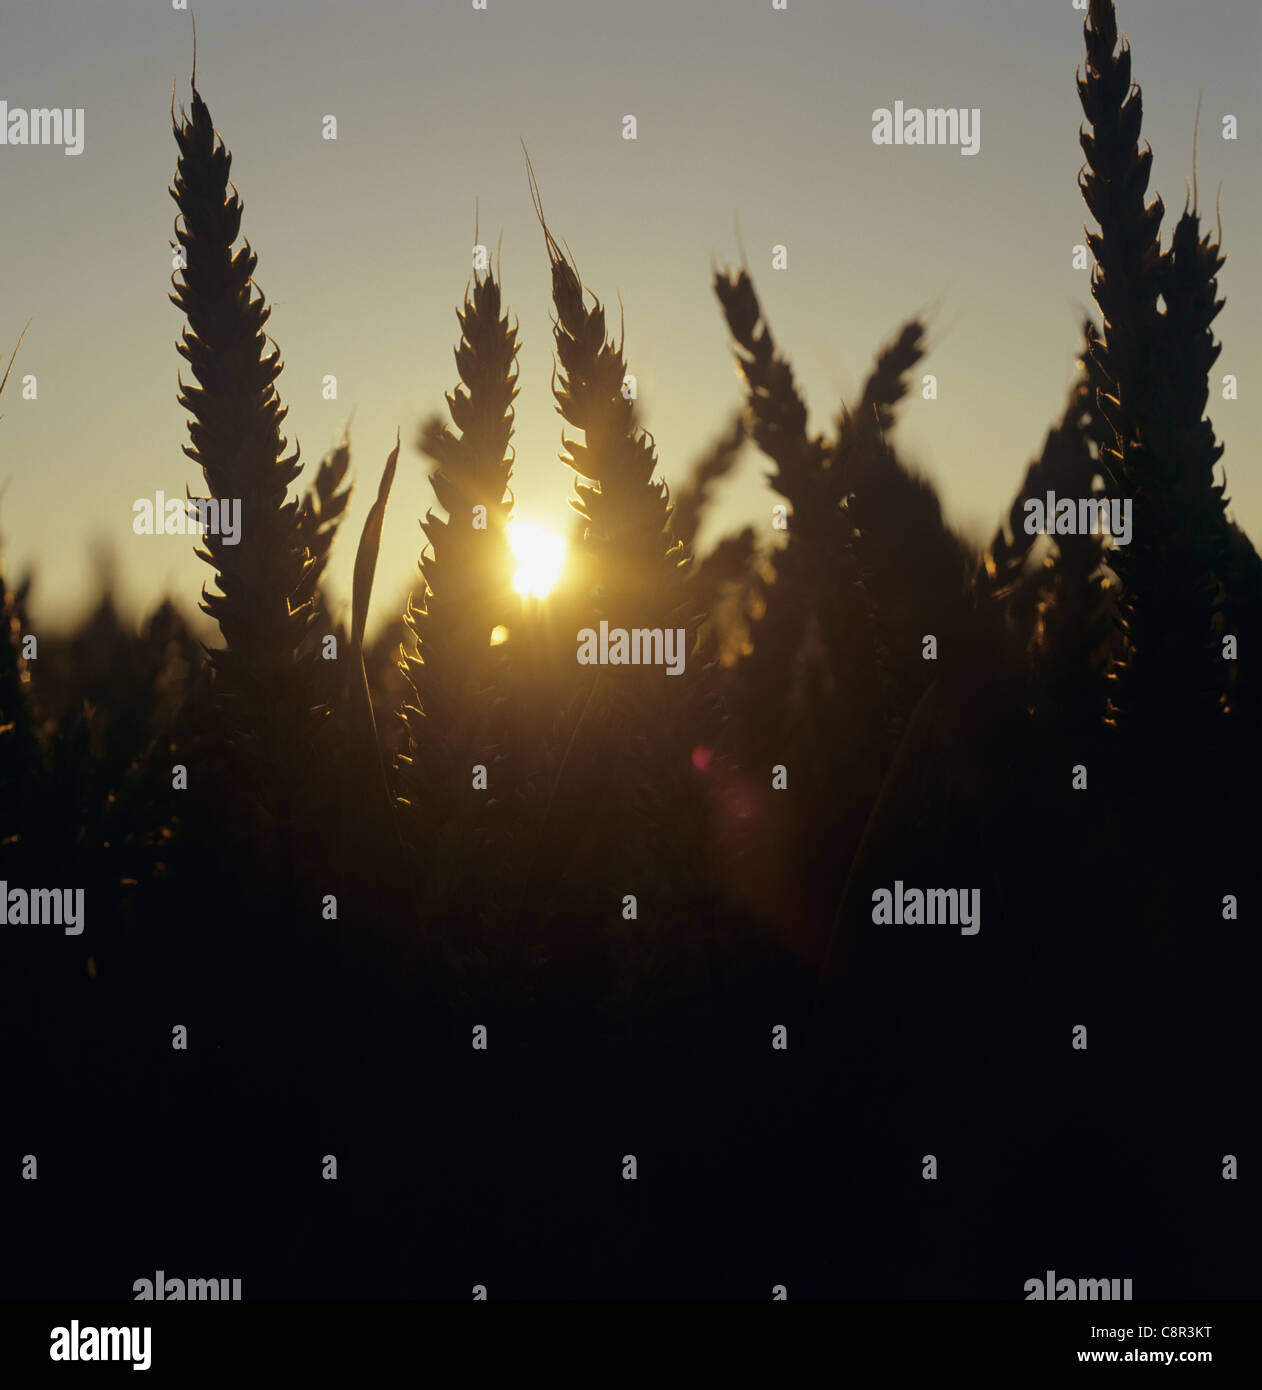 Ears of wheat with the sun setting behind them on a fine summer evening in July - Stock Image